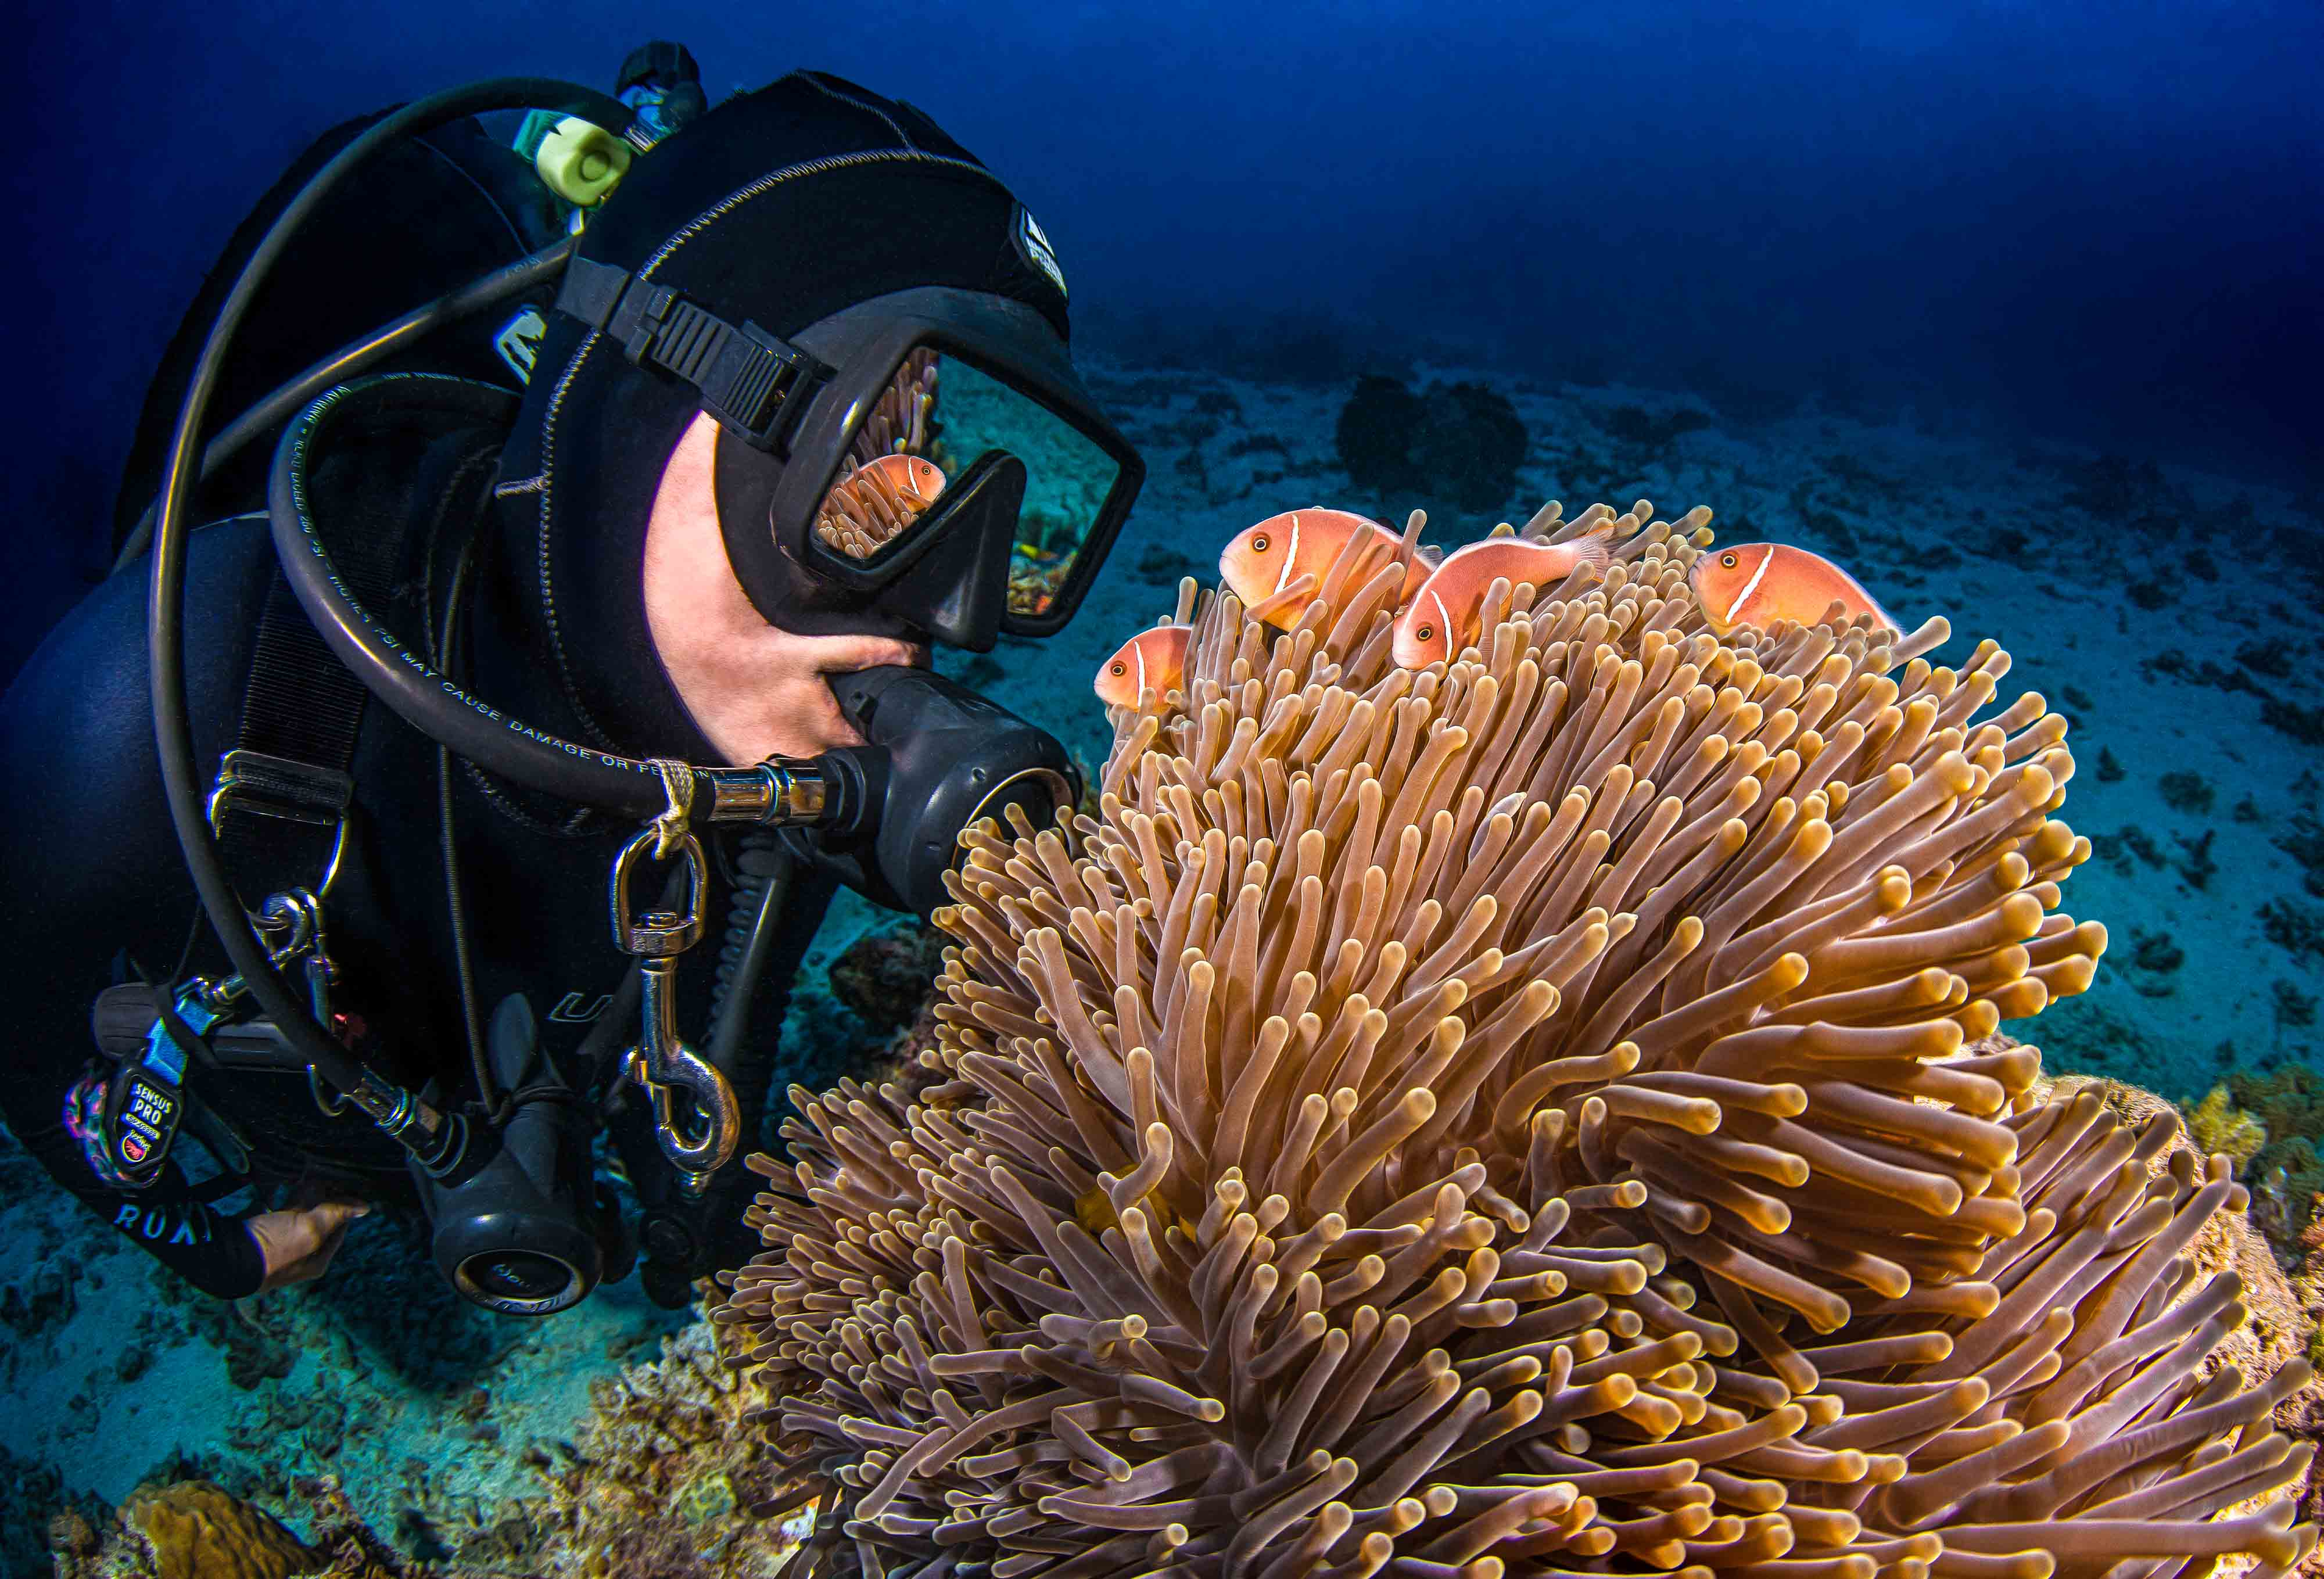 scuba diver looking at fish underwater while scuba diving